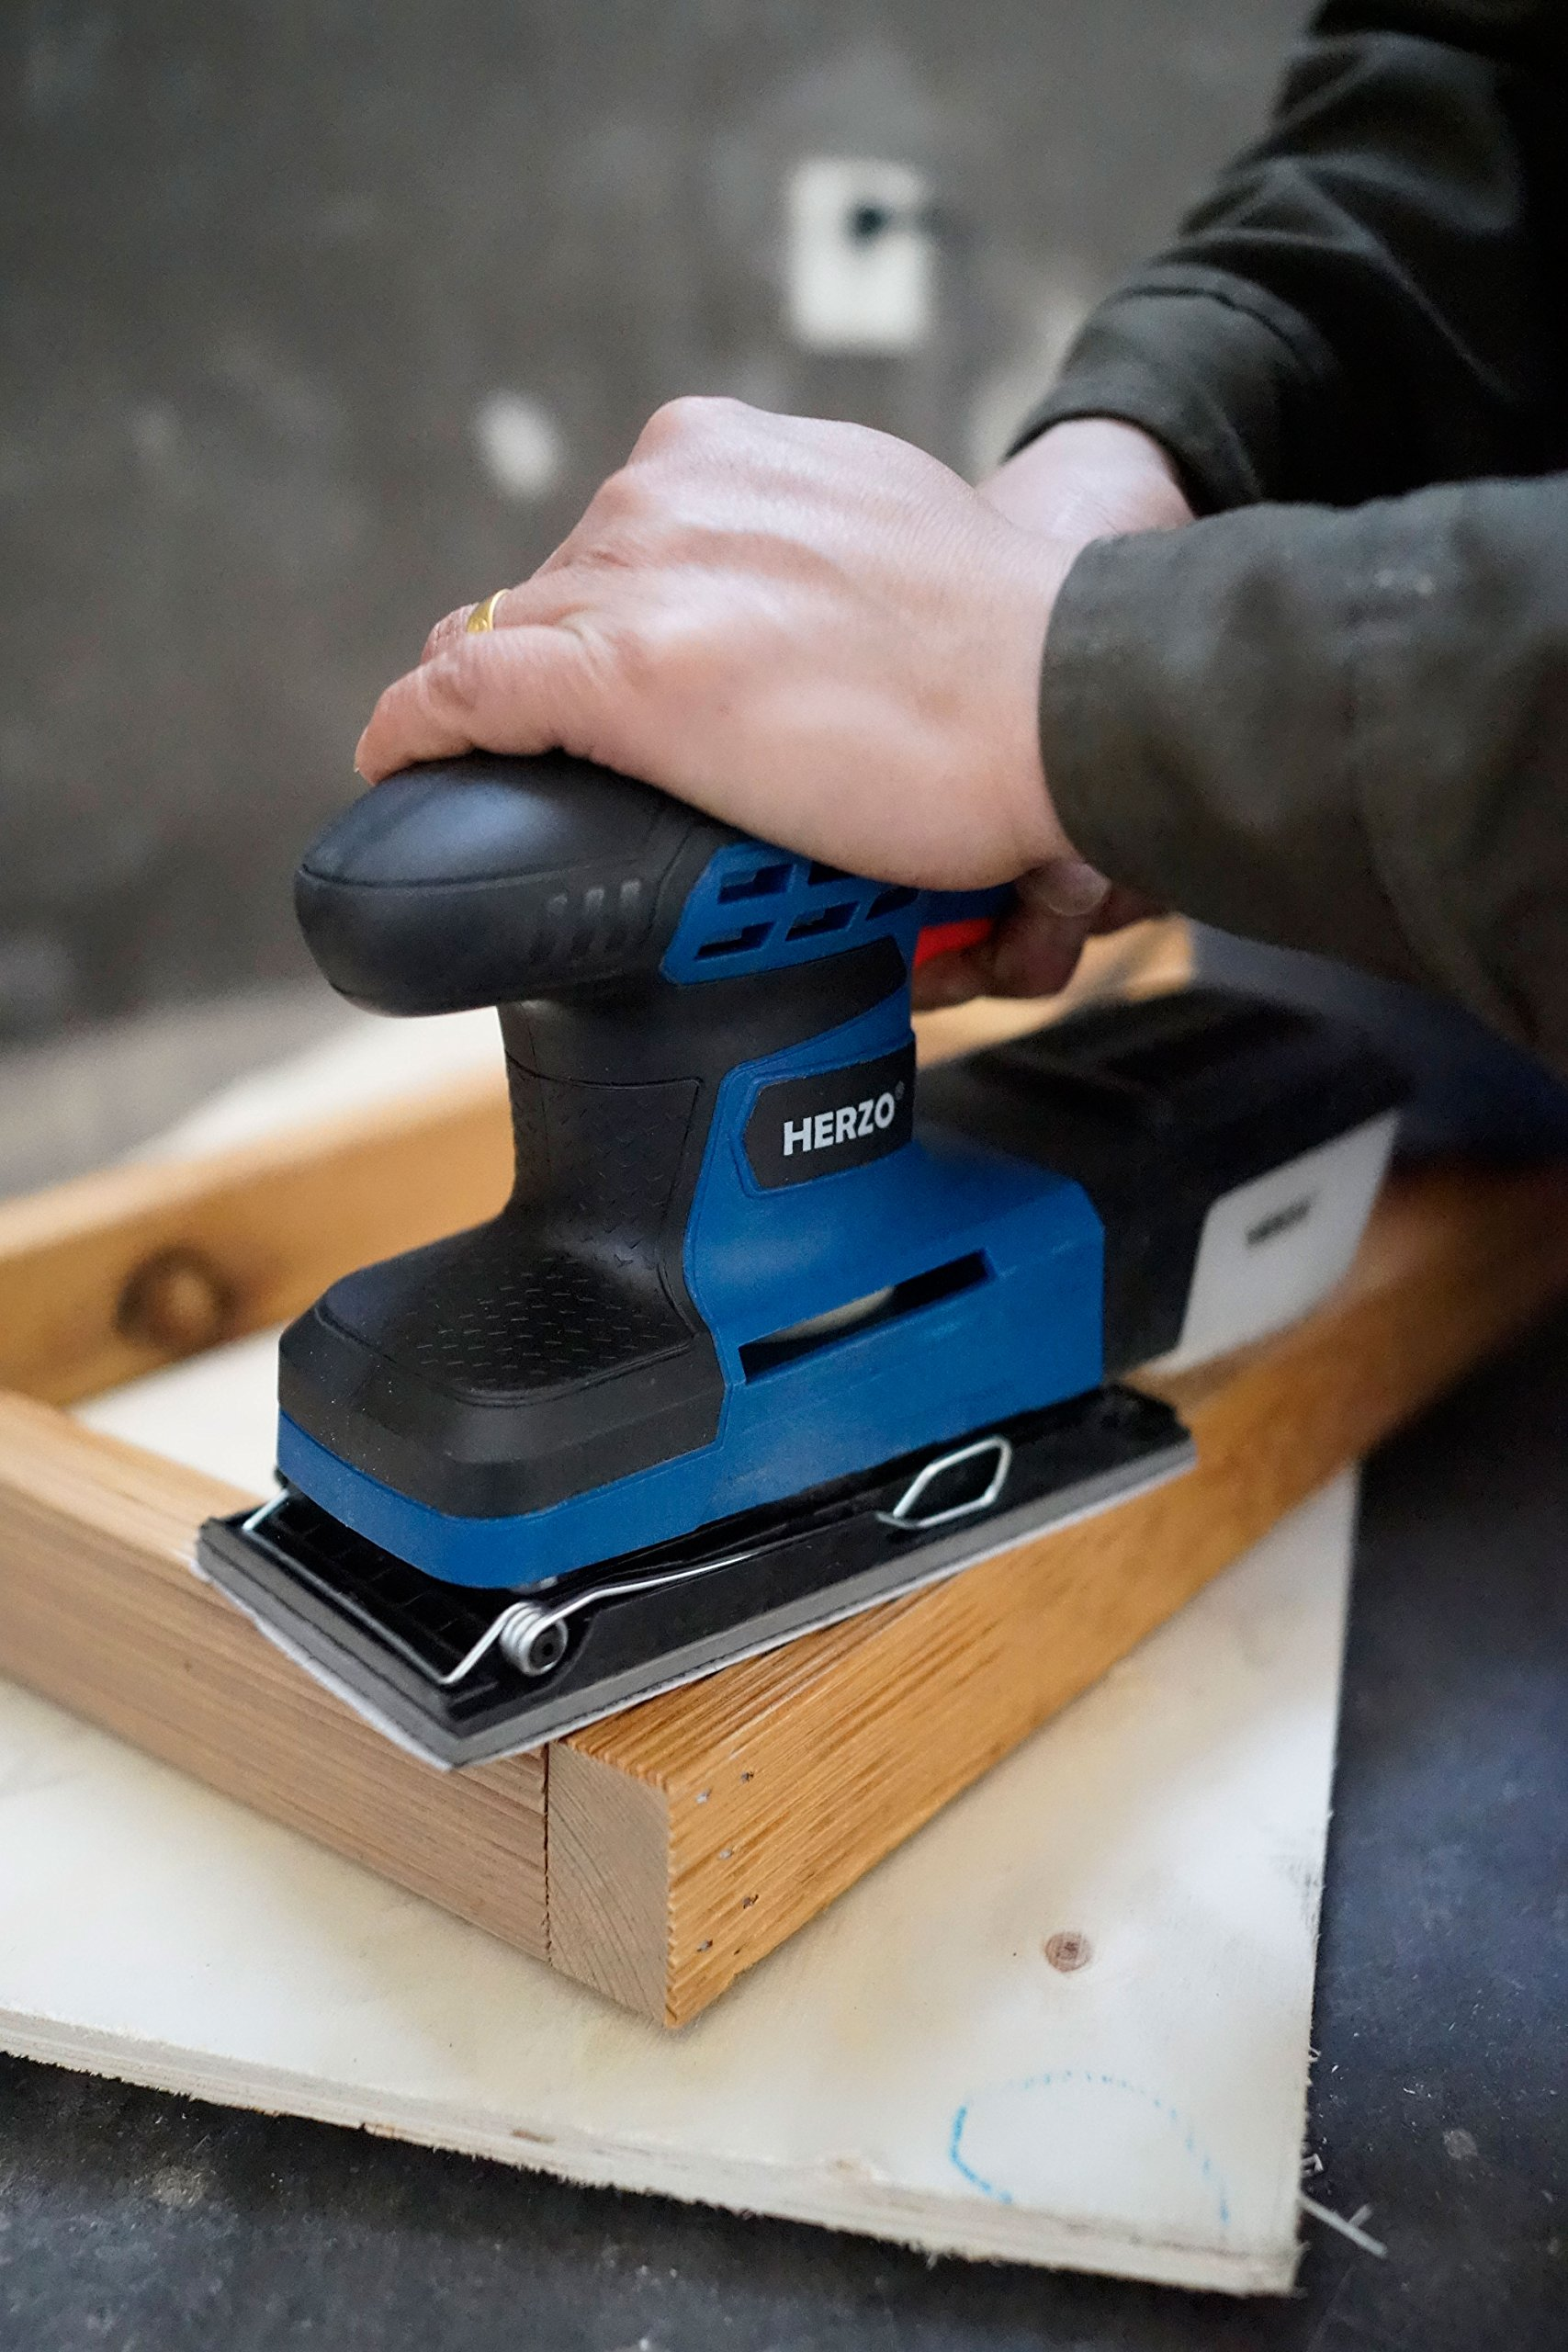 Sheet Sander HERZO 1/3 Finishing Sander with Self-Dust Collection Box, Hook-and-Loop Base Pad and 10 Pcs Sandpaper 2.2A by HERZO (Image #4)